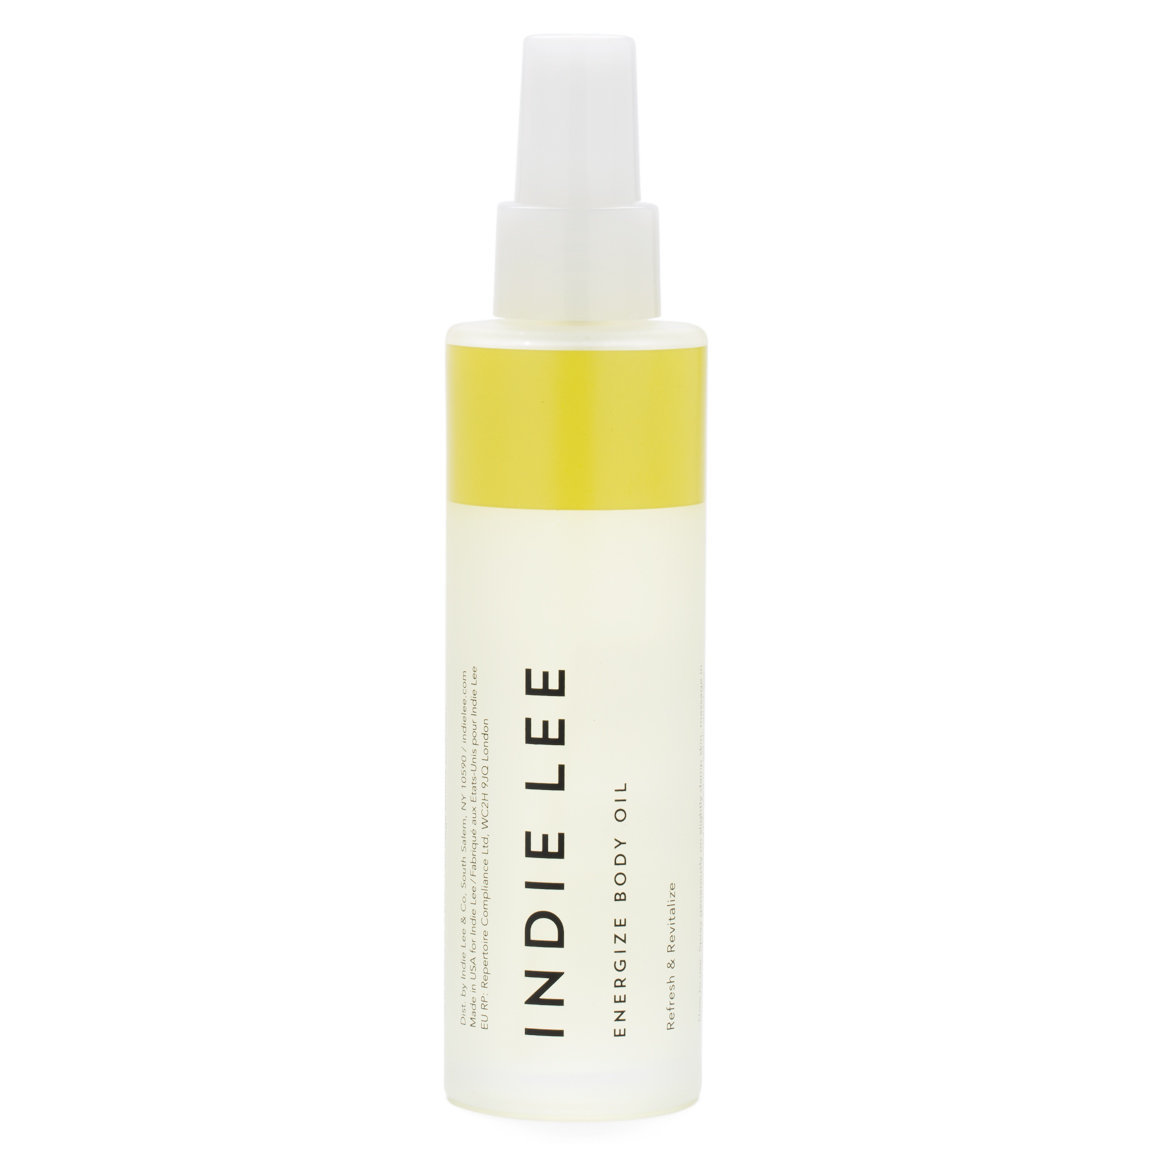 Indie Lee Energize Body Oil alternative view 1 - product swatch.